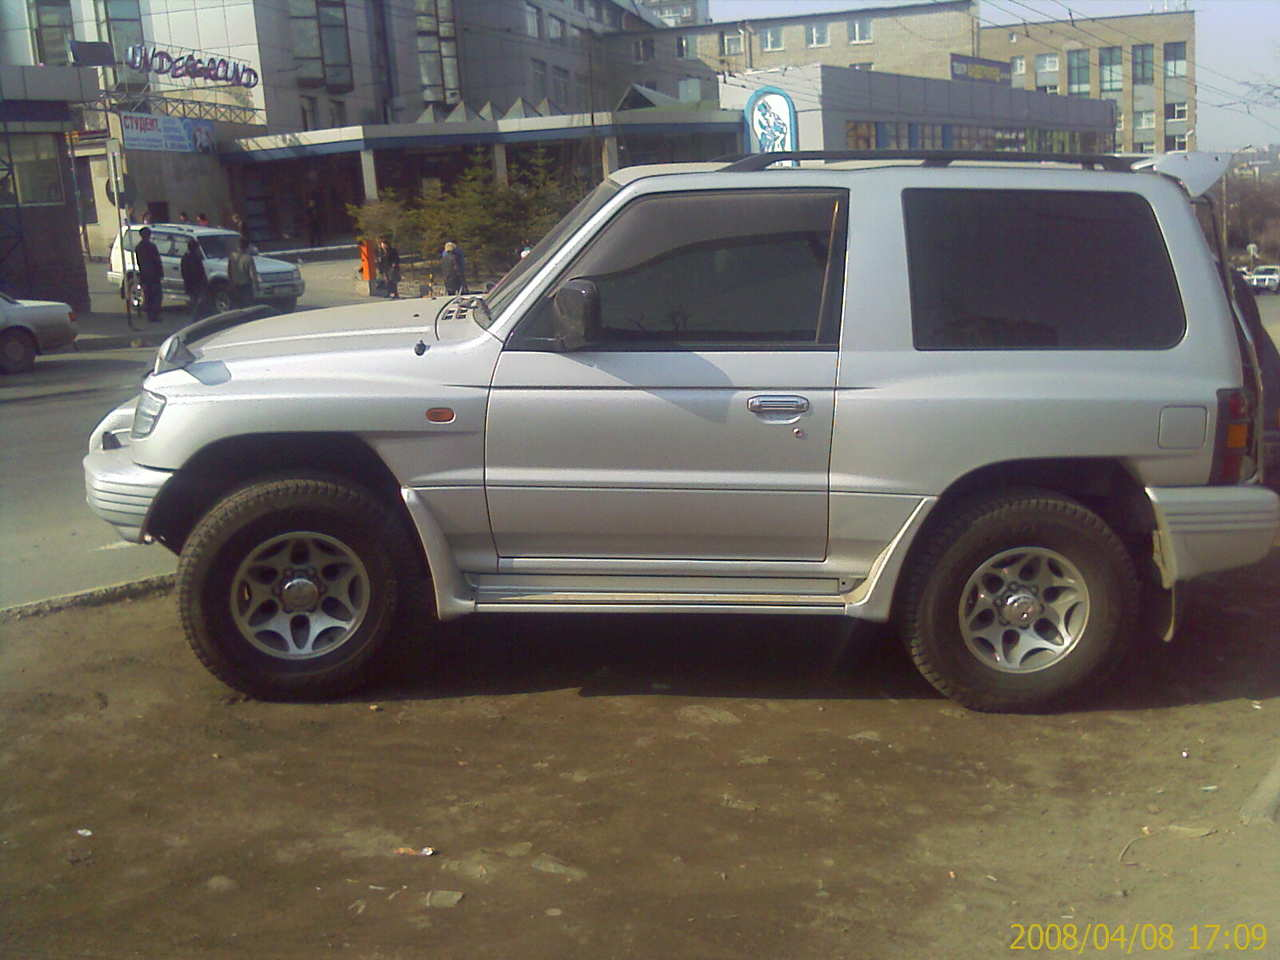 used 1998 mitsubishi pajero photos 3500cc gasoline. Black Bedroom Furniture Sets. Home Design Ideas